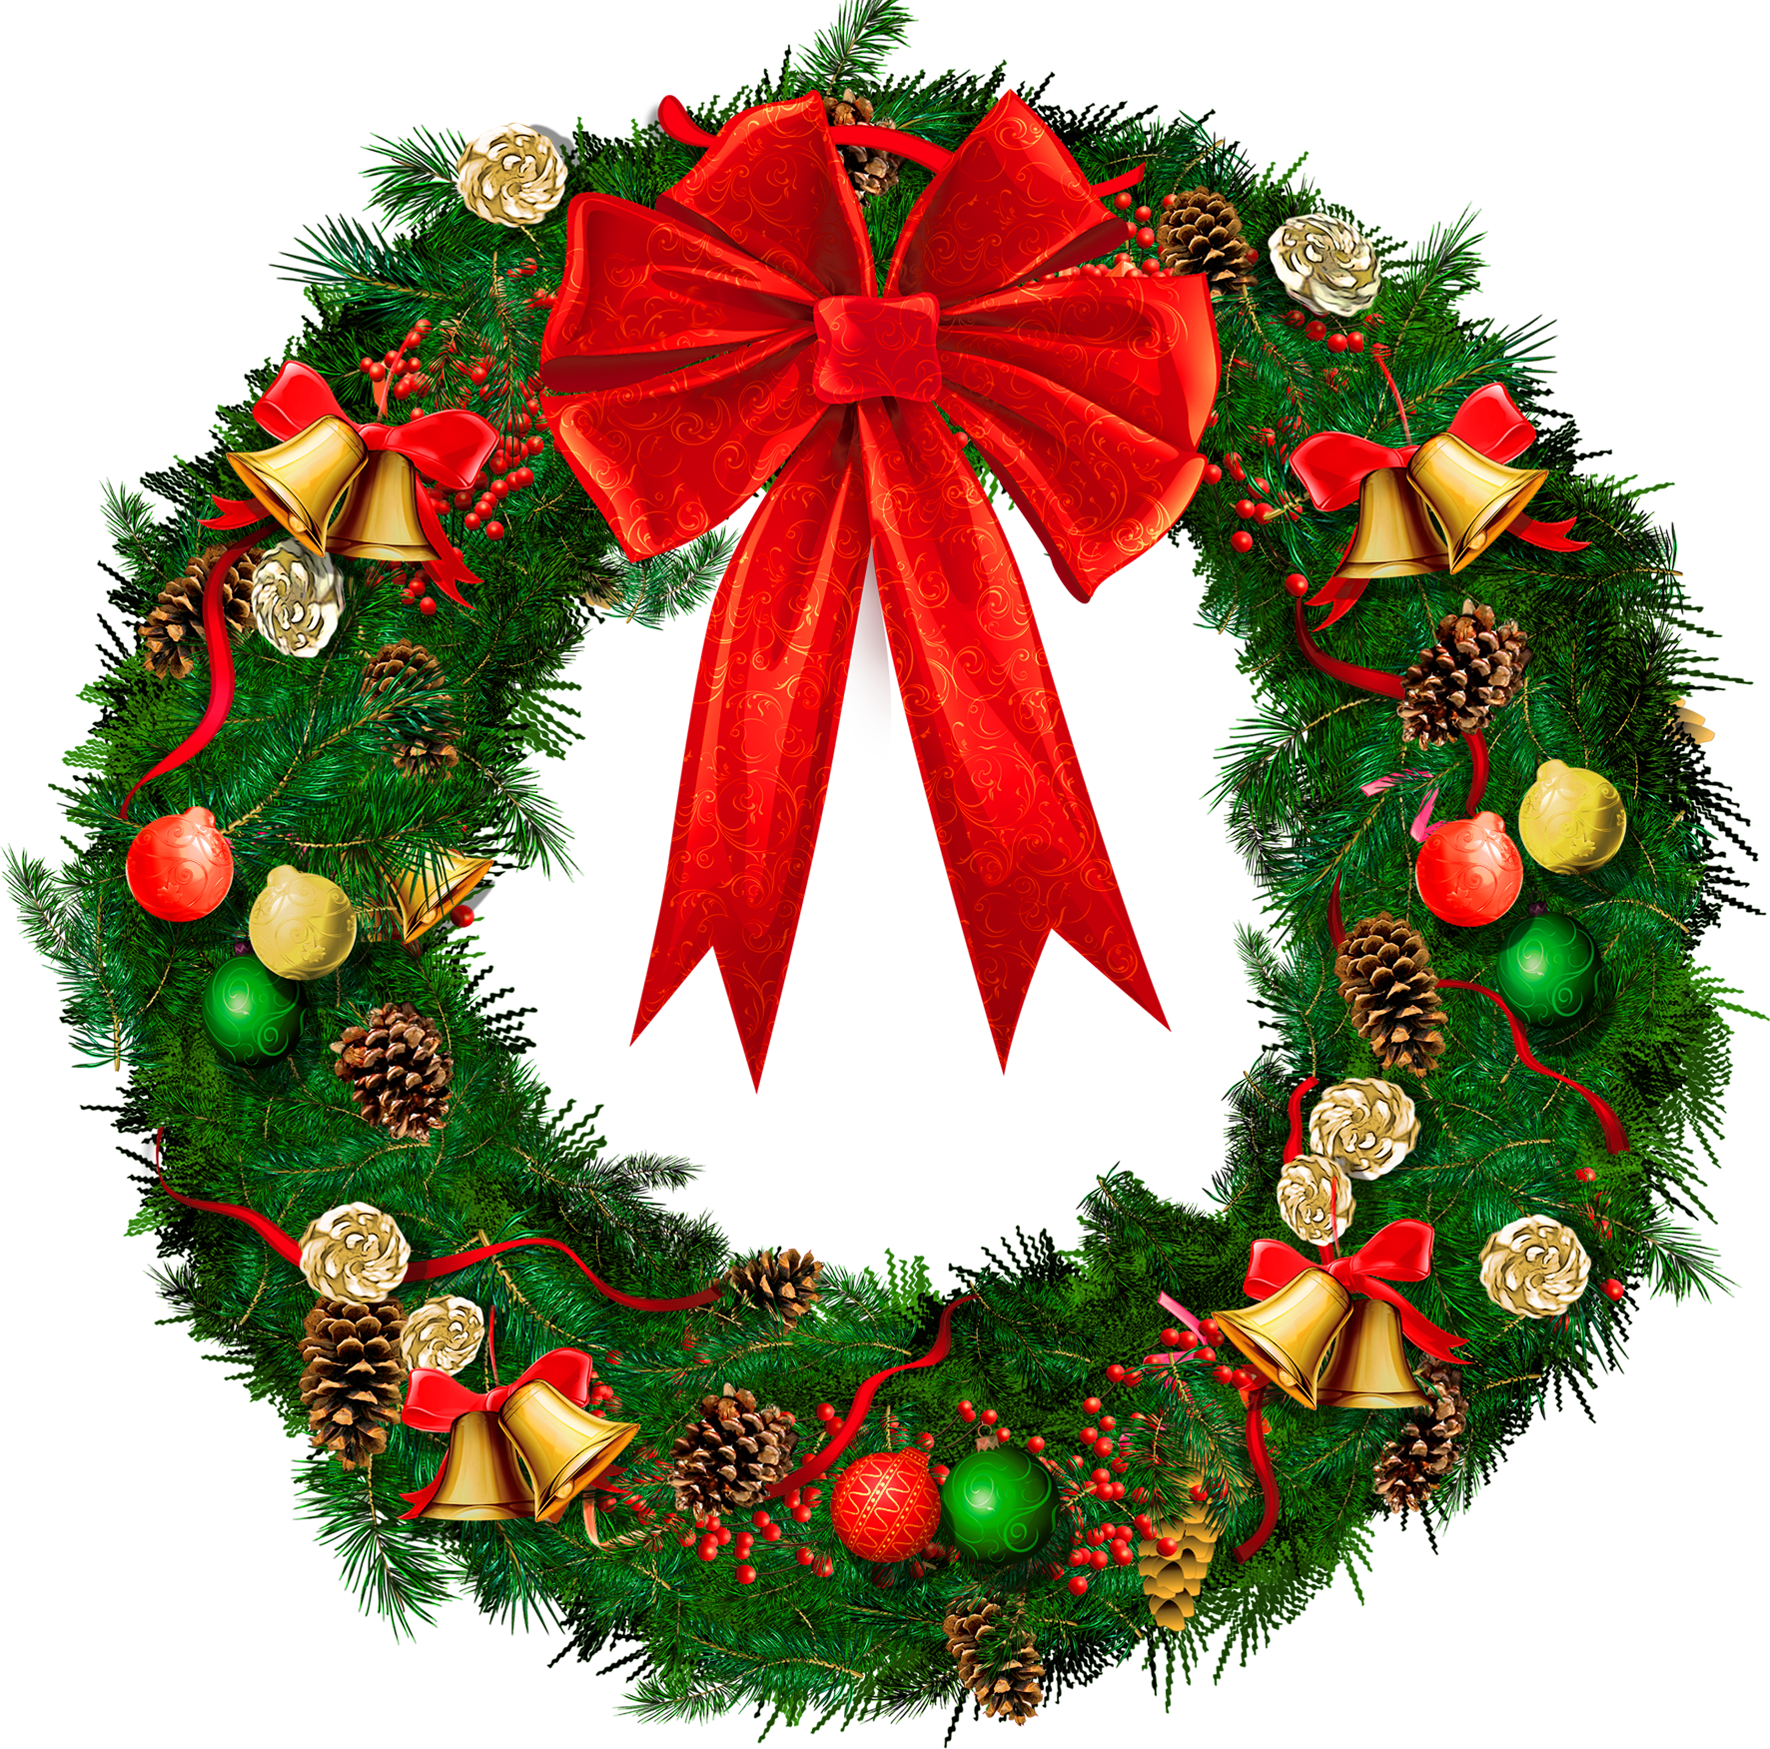 Clipart fruit wreath. Free christmas picture download